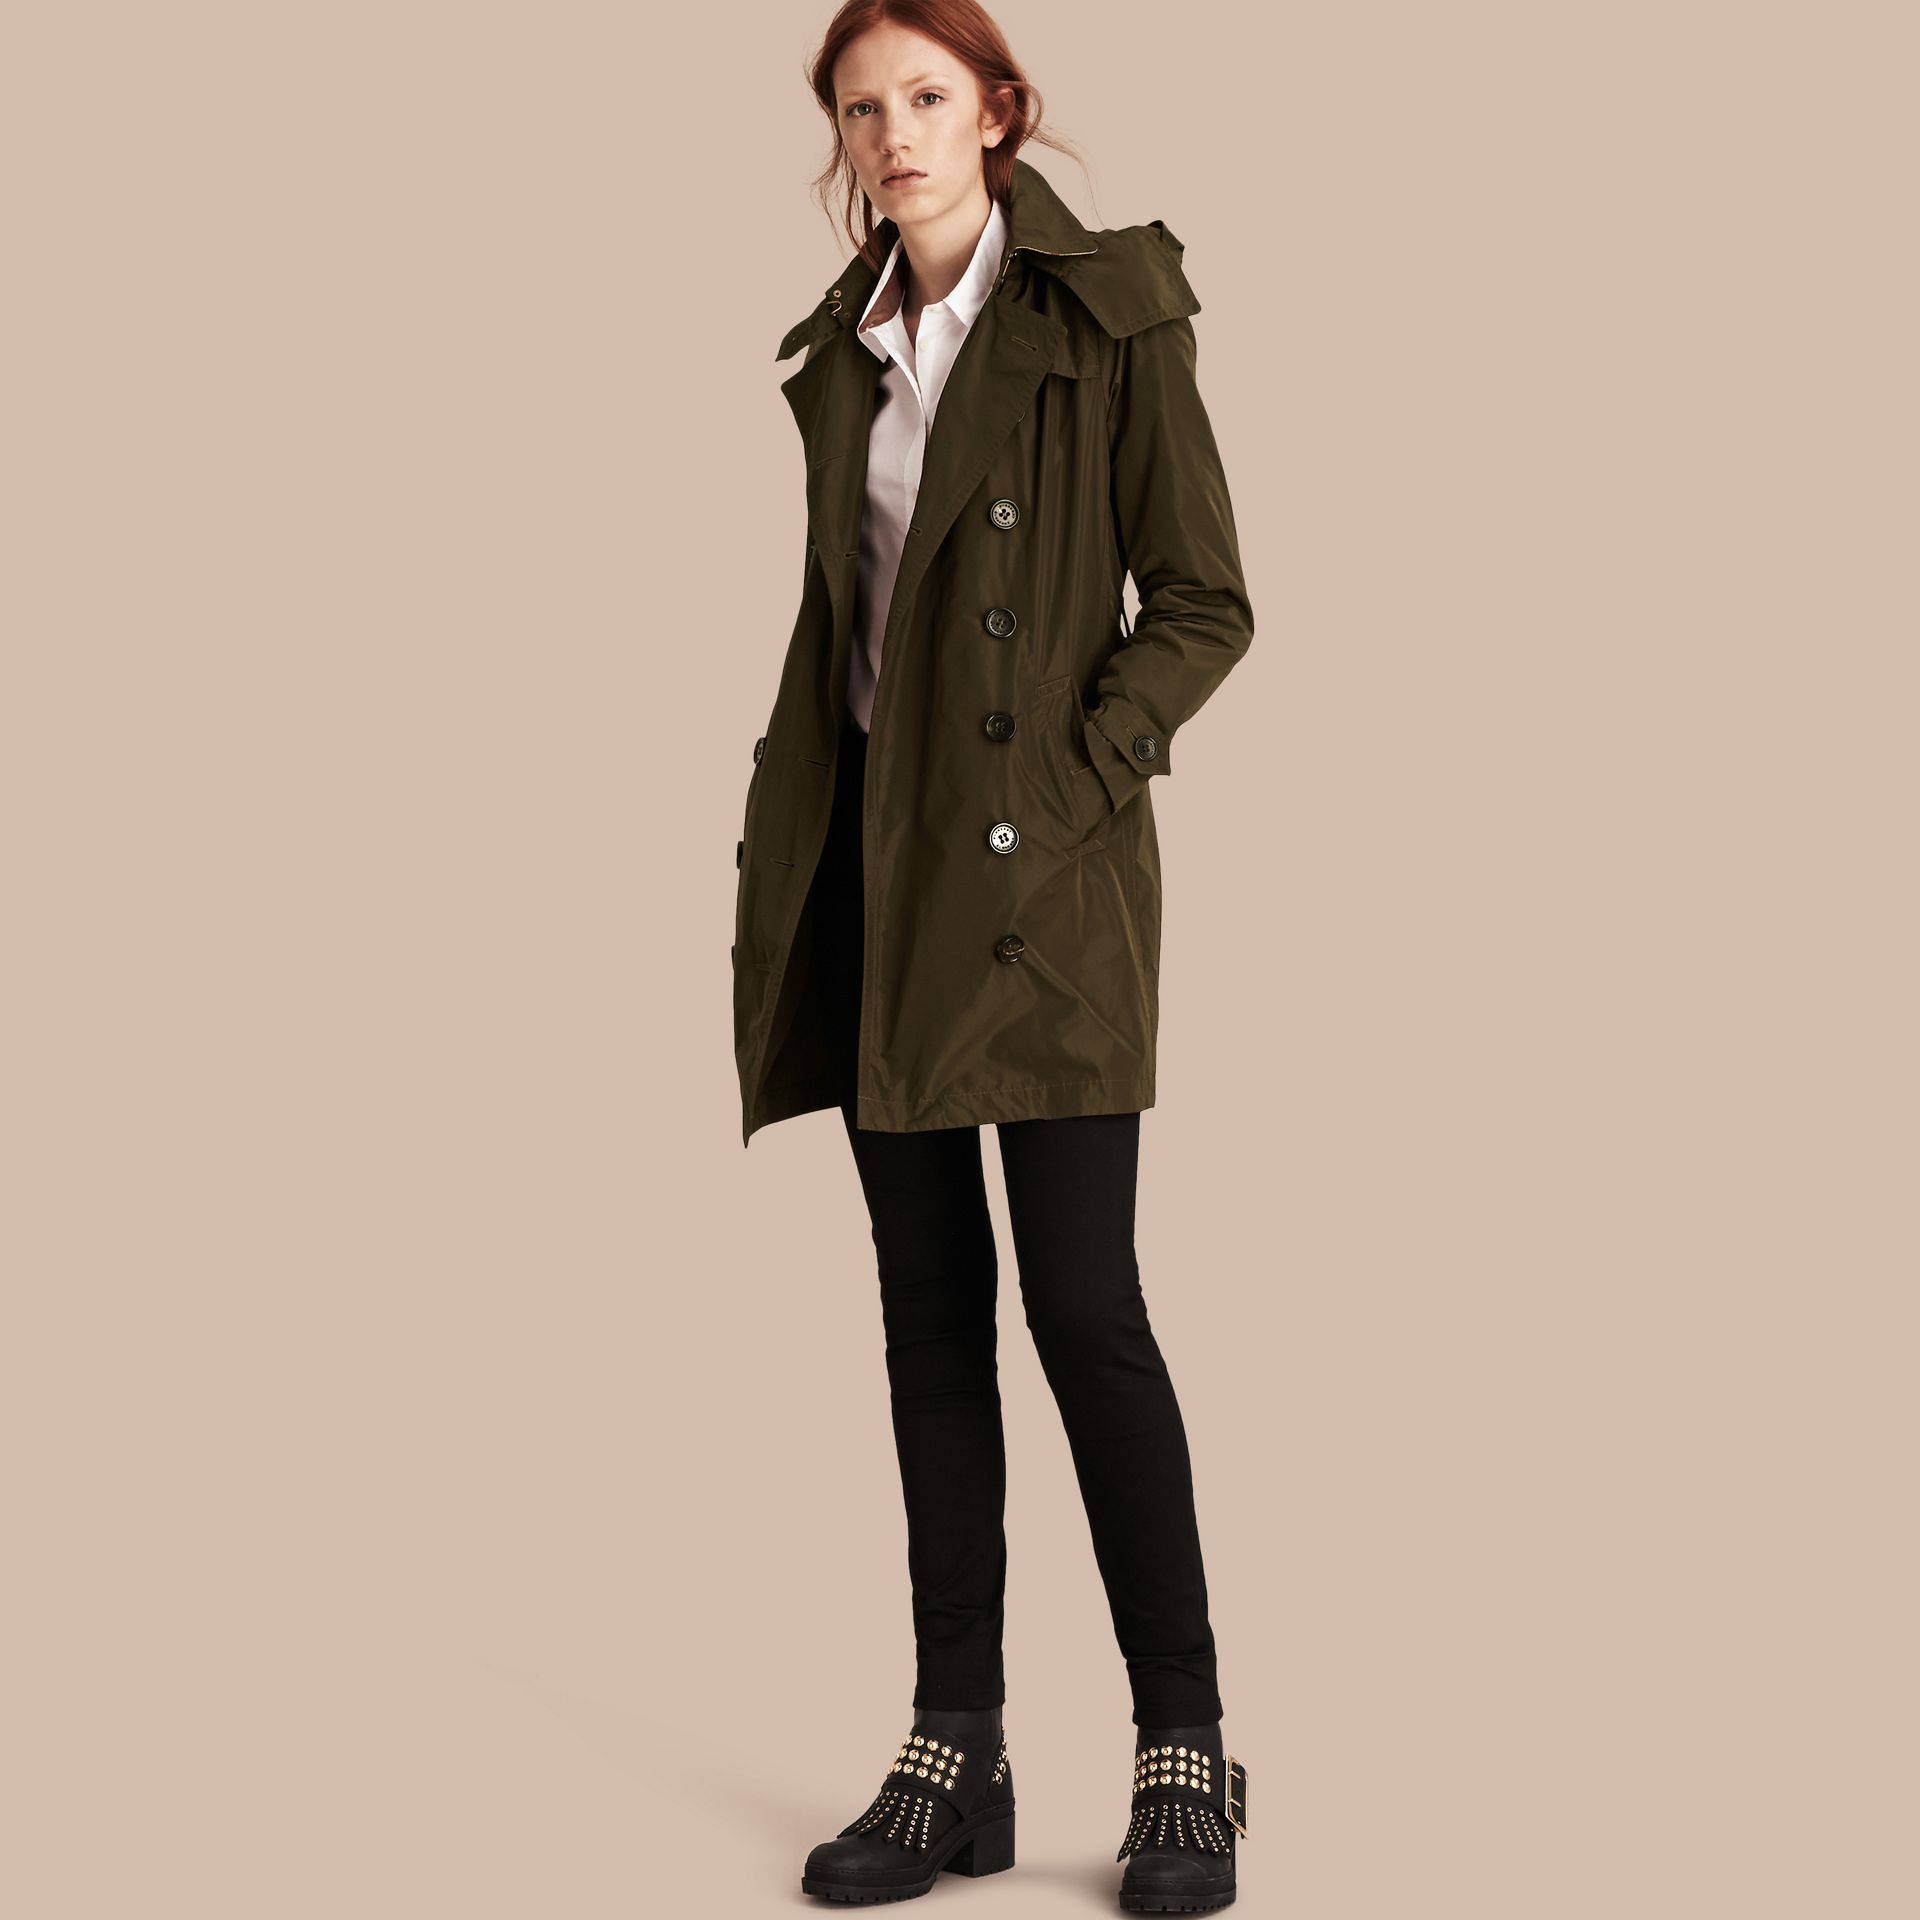 Dark olive Taffeta Trench Coat with Detachable Hood Dark Olive - gallery image 1